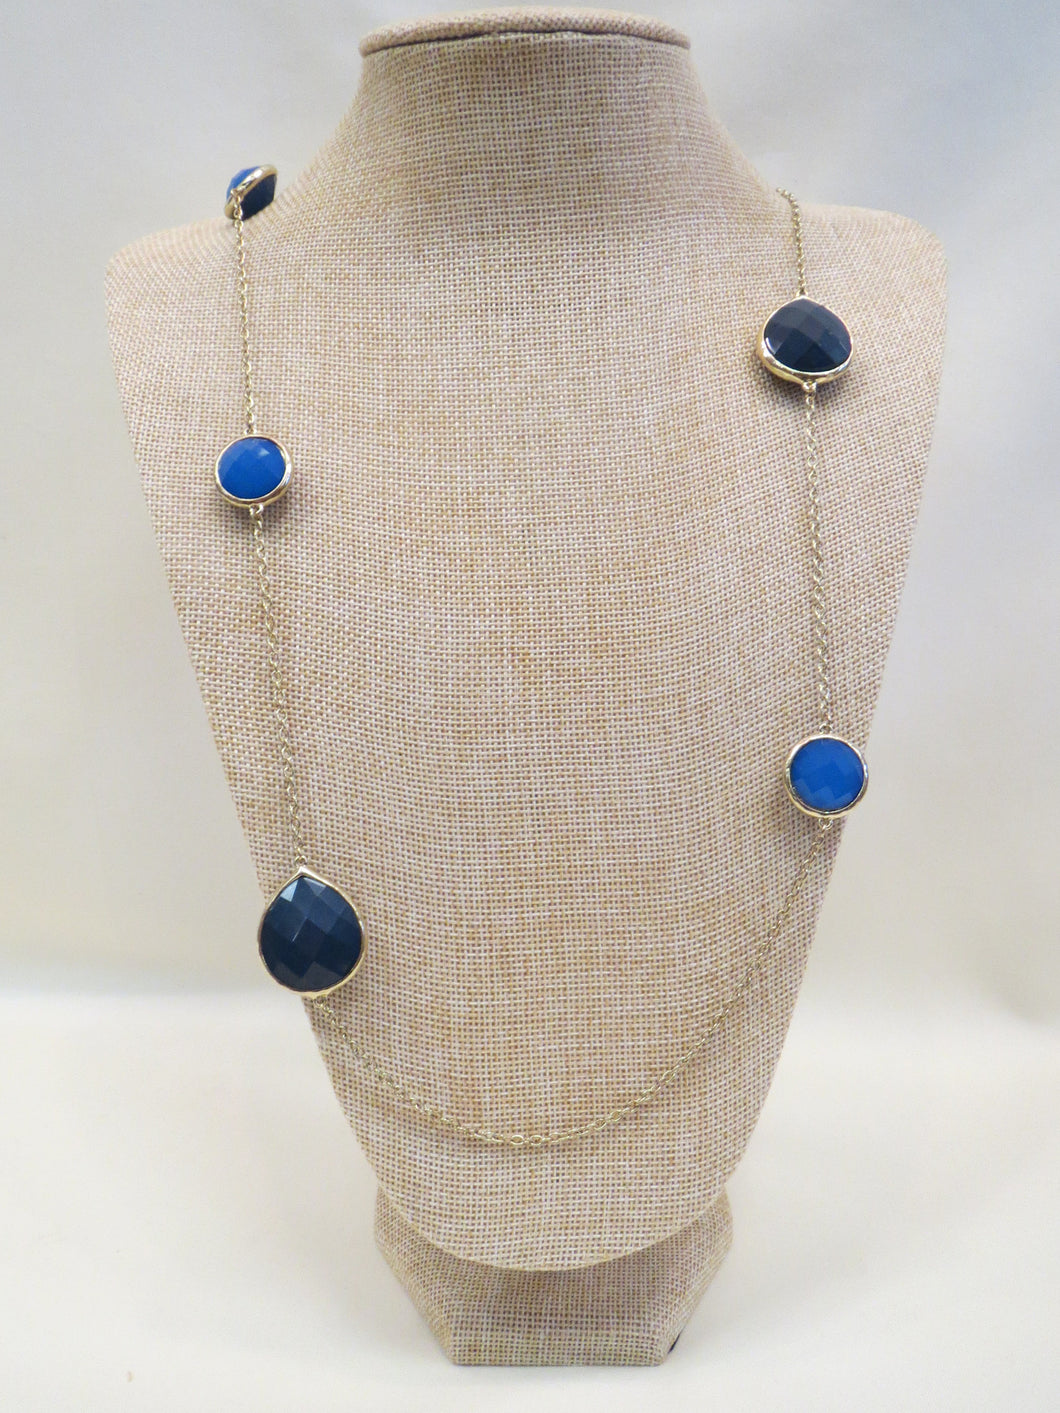 ADO | Blue Stone Necklace Long Gold Chain - All Decd Out